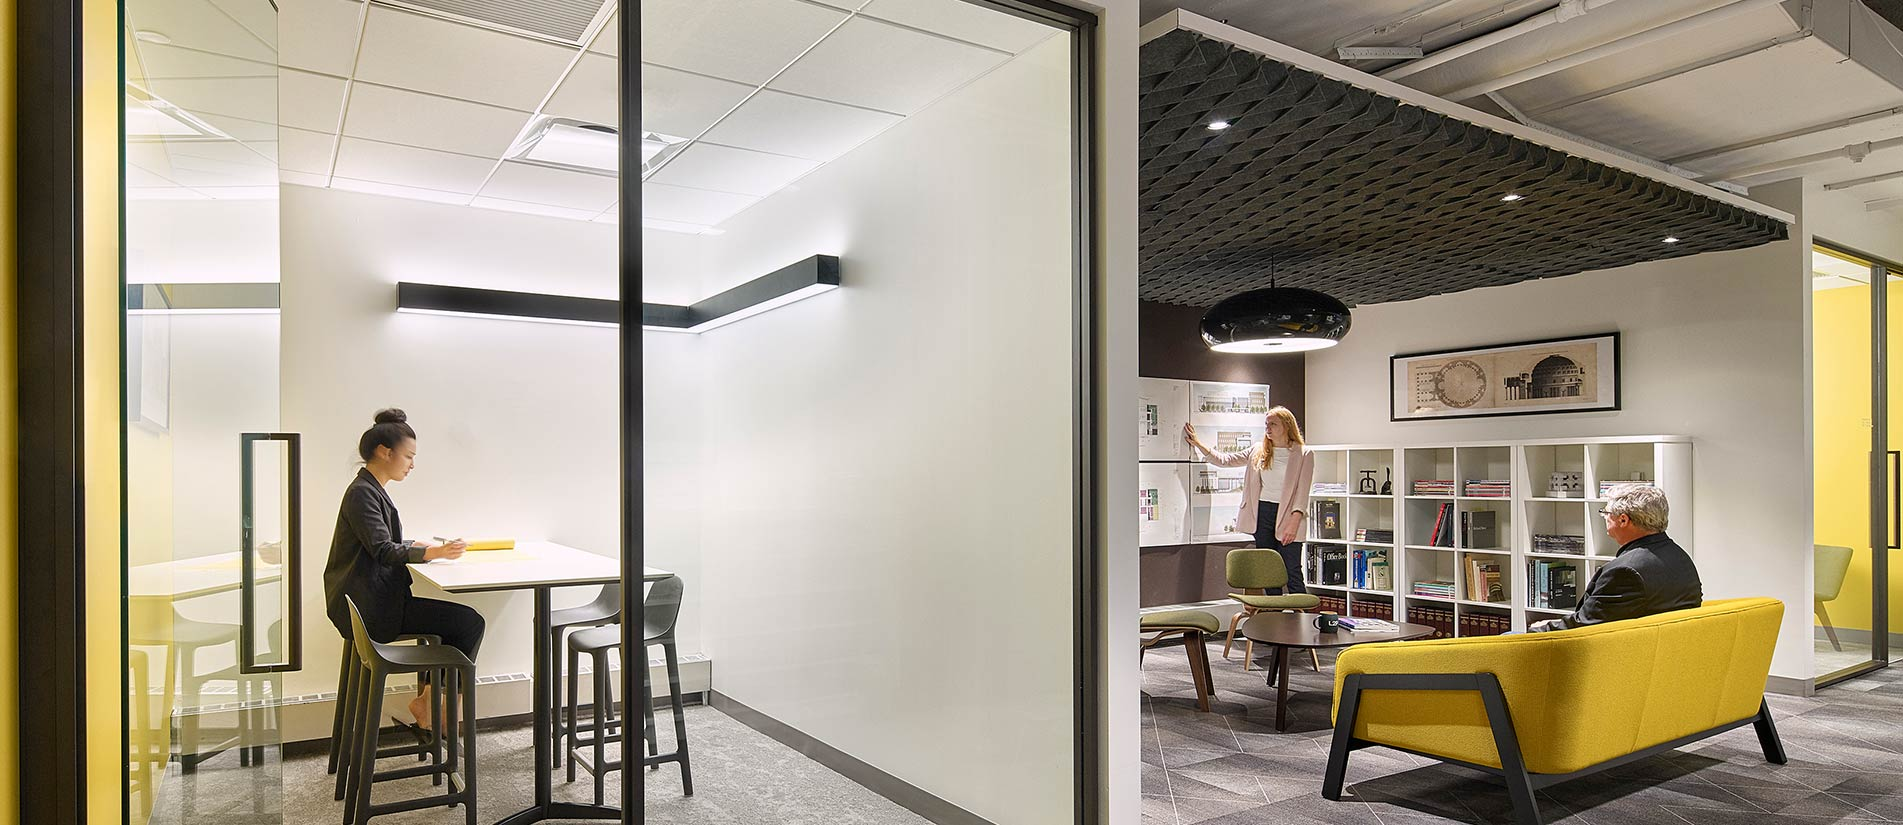 Two distinct offices, including a modern workspace and collaboration room, designed with Transwall's One-LP movable partition walls.